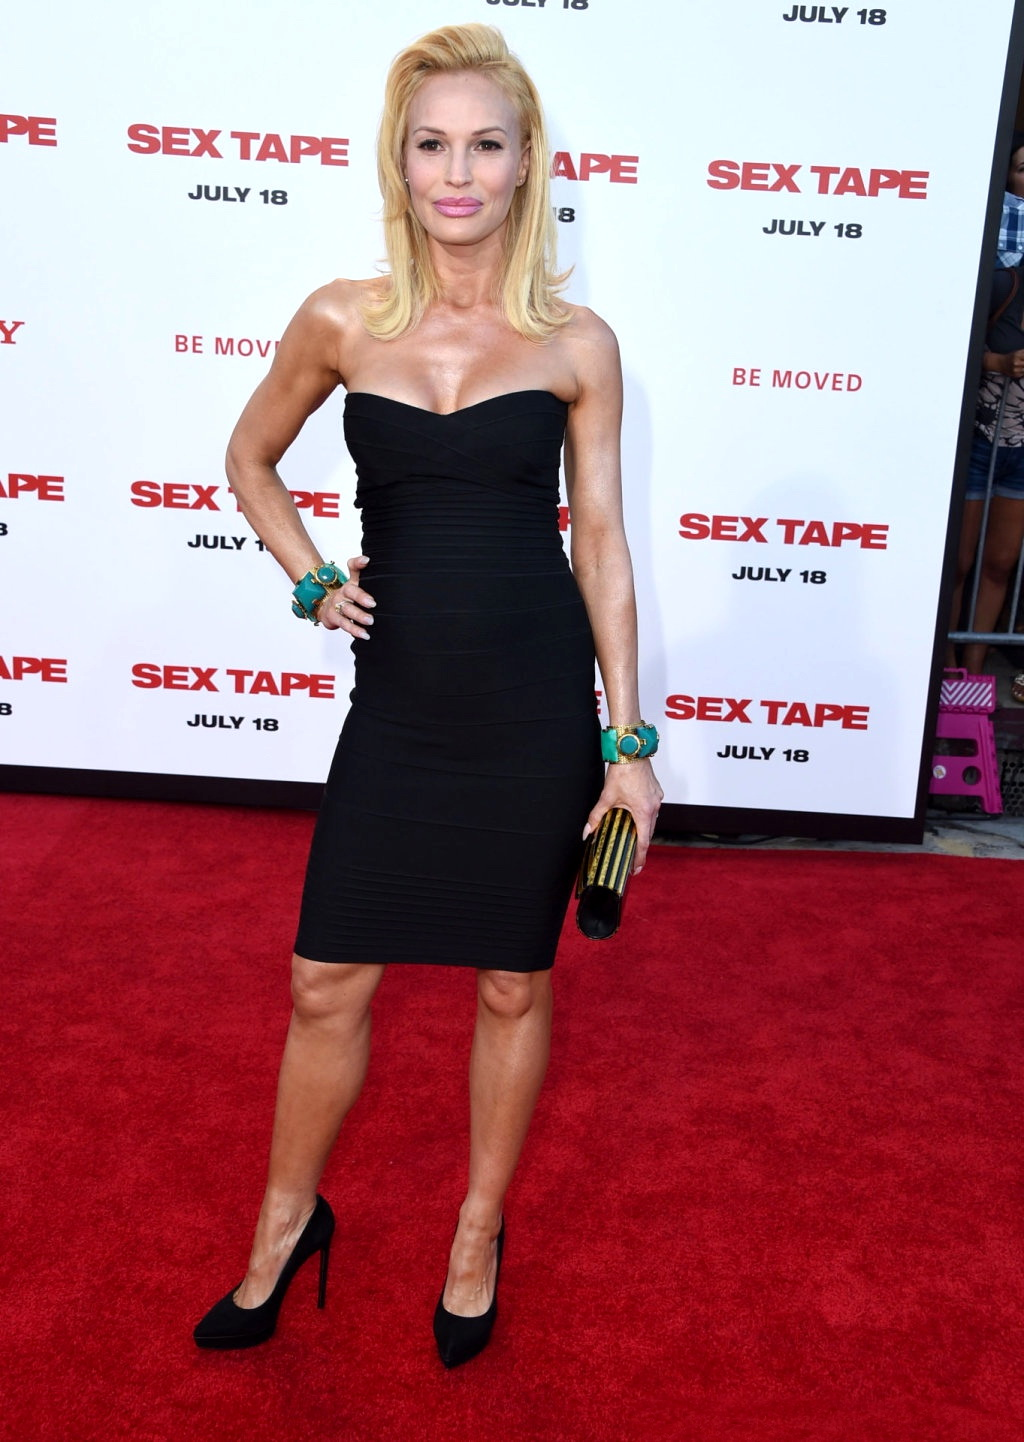 Jolene Blalock pregnant and busty wearing a strapless black dress at the 'Sex Tape' premiere